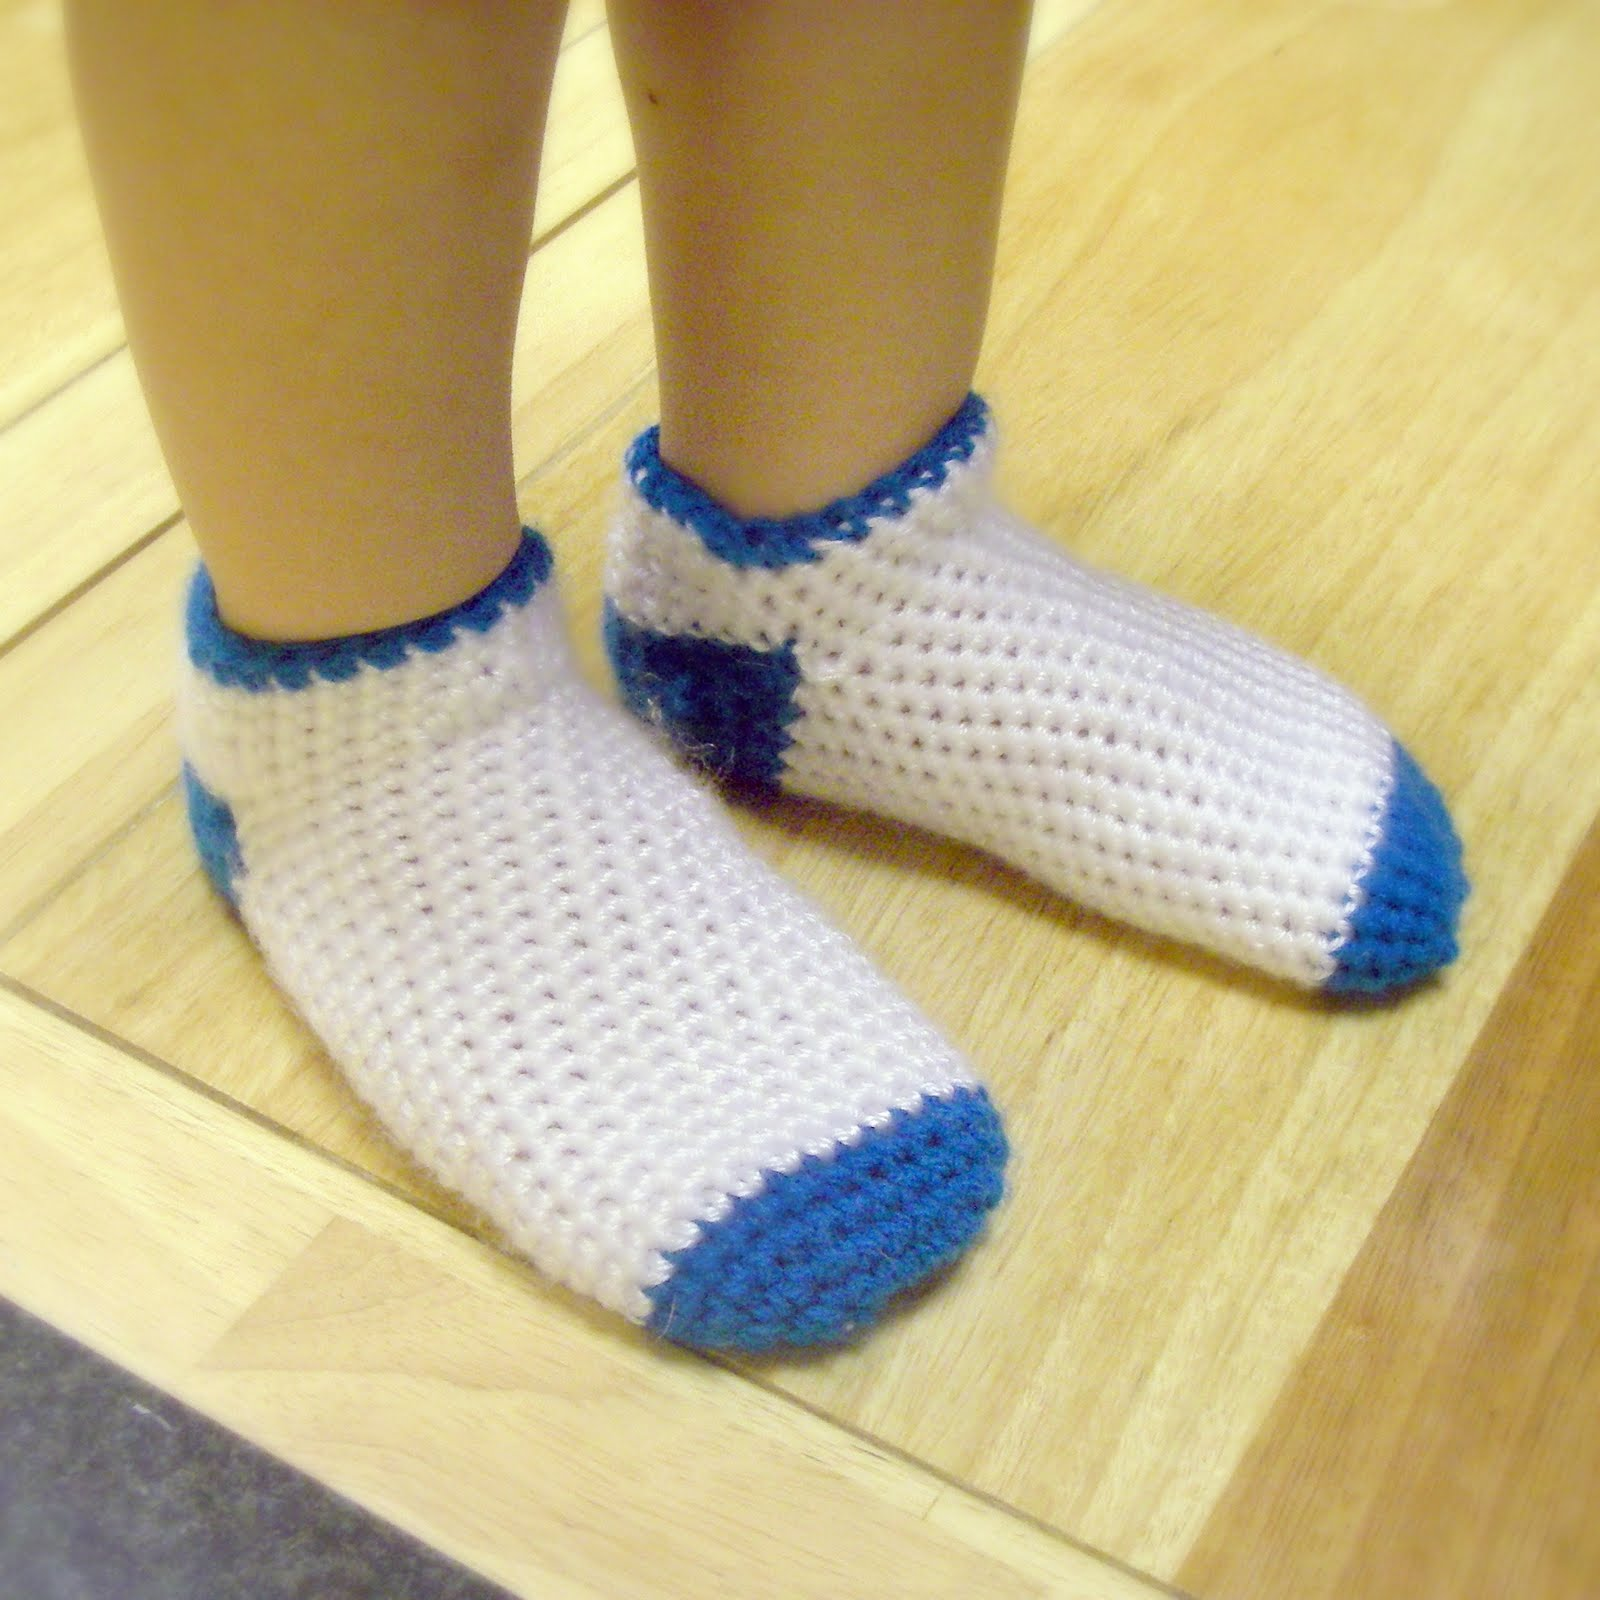 Crochet Socks : Baby - Toddler Crochet Socks - mamacheemamachee